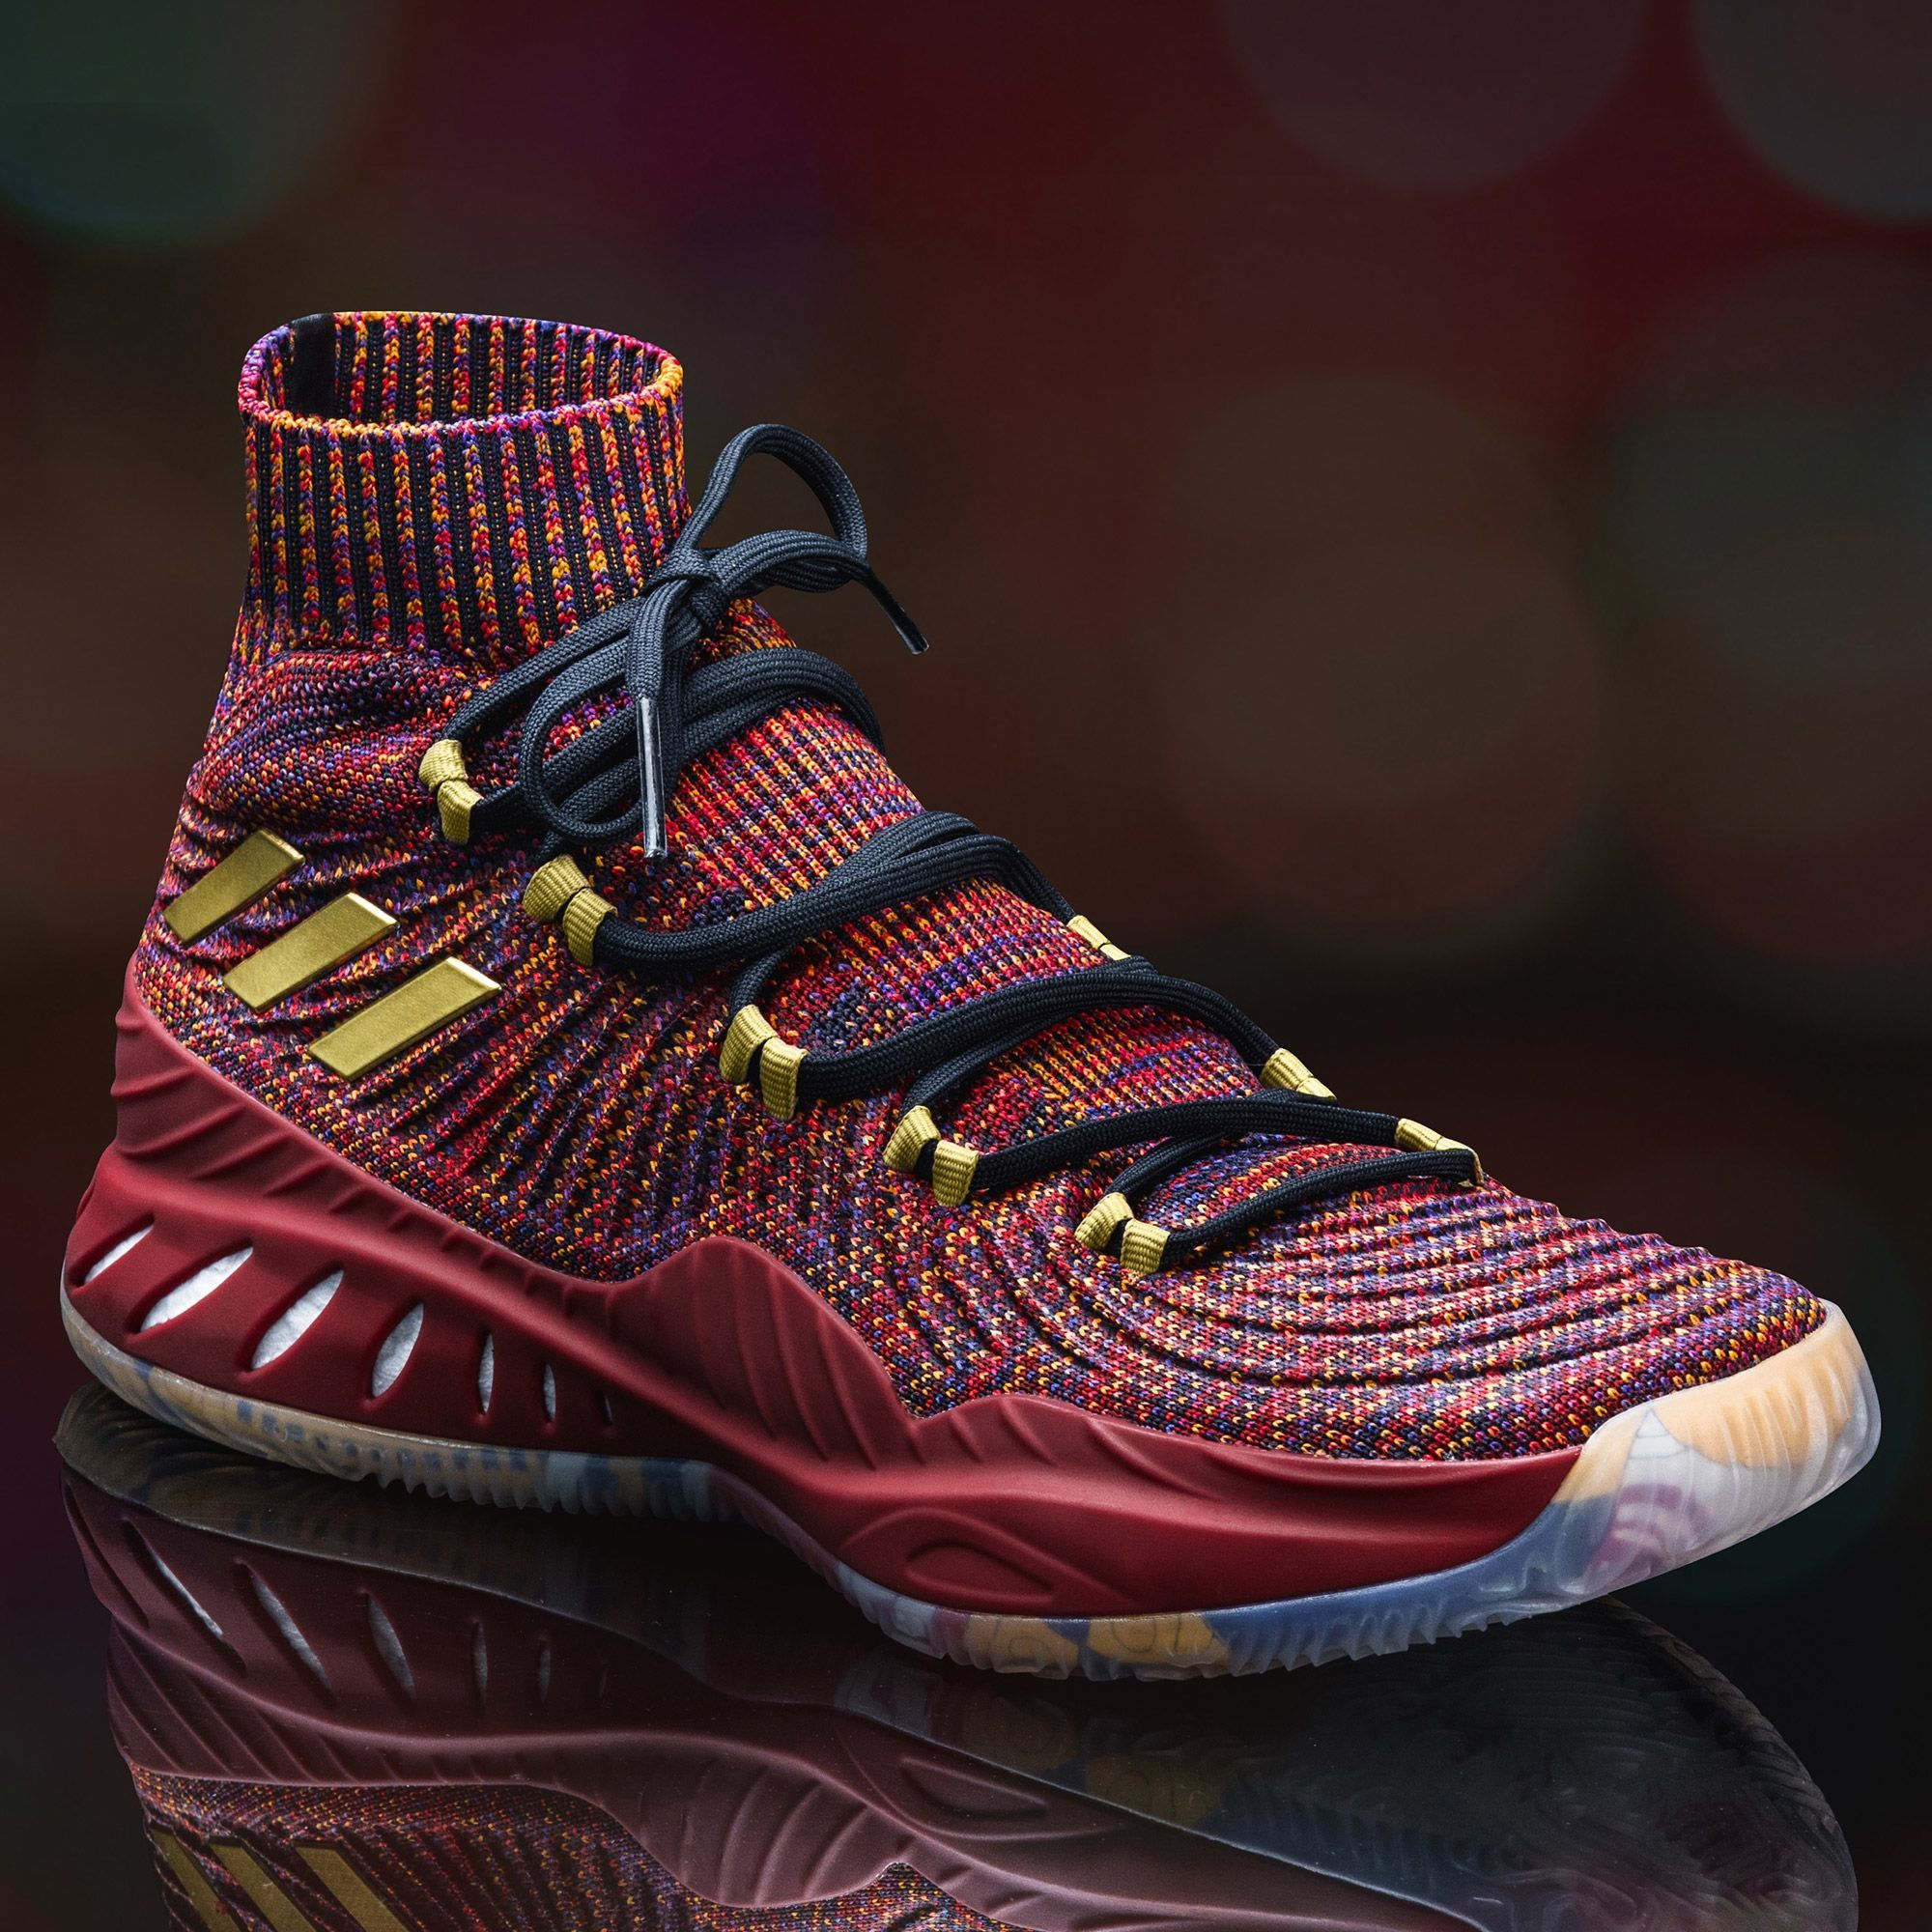 51020d0ebf adidas Drops a Surprise SM Crazy Explosive 2017 Primeknit for Las Vegas -  WearTesters